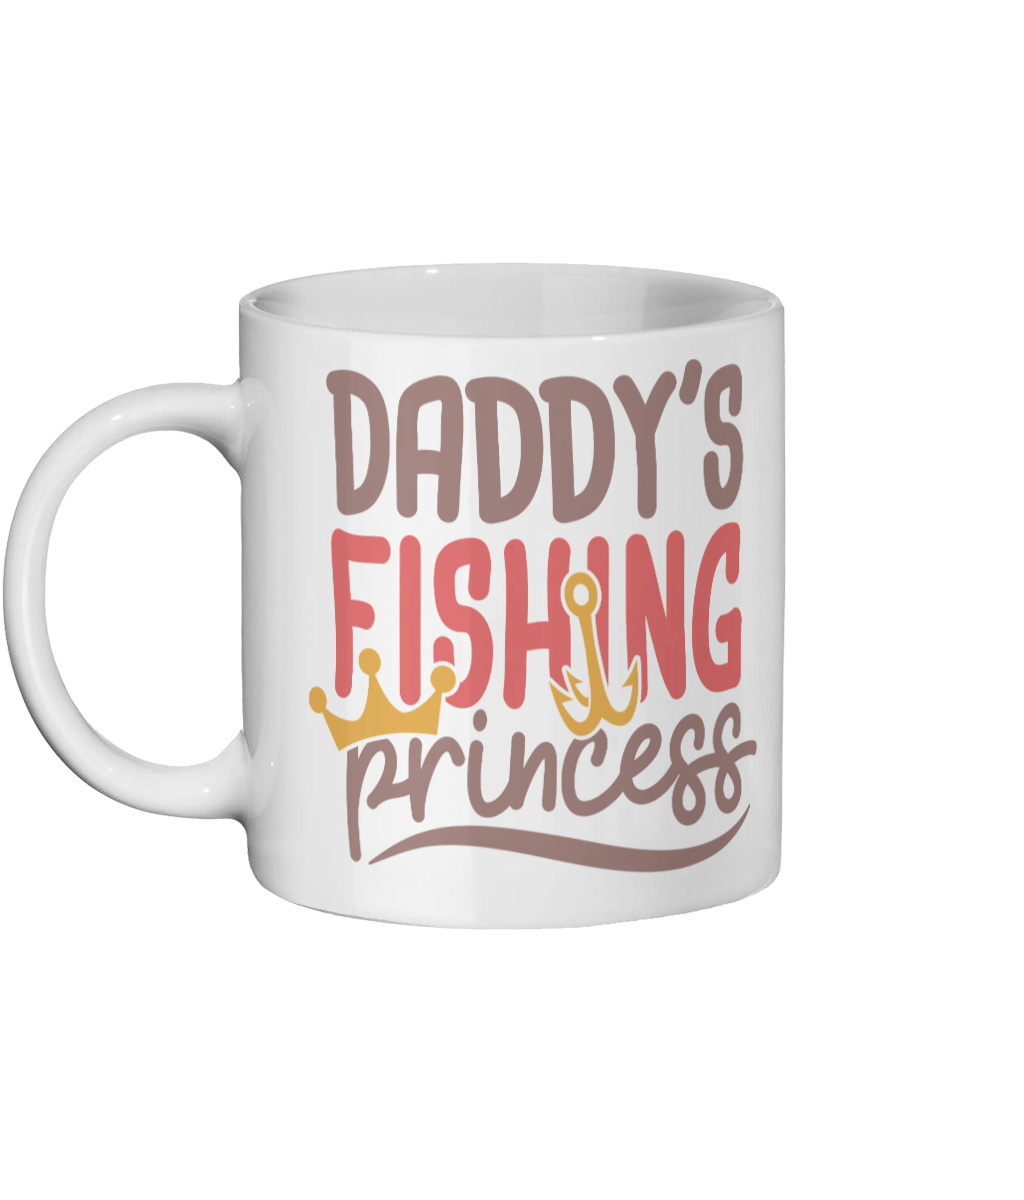 Personalised Custom Coffee Mug- Daddy's Fishing Princess - Status Mugs